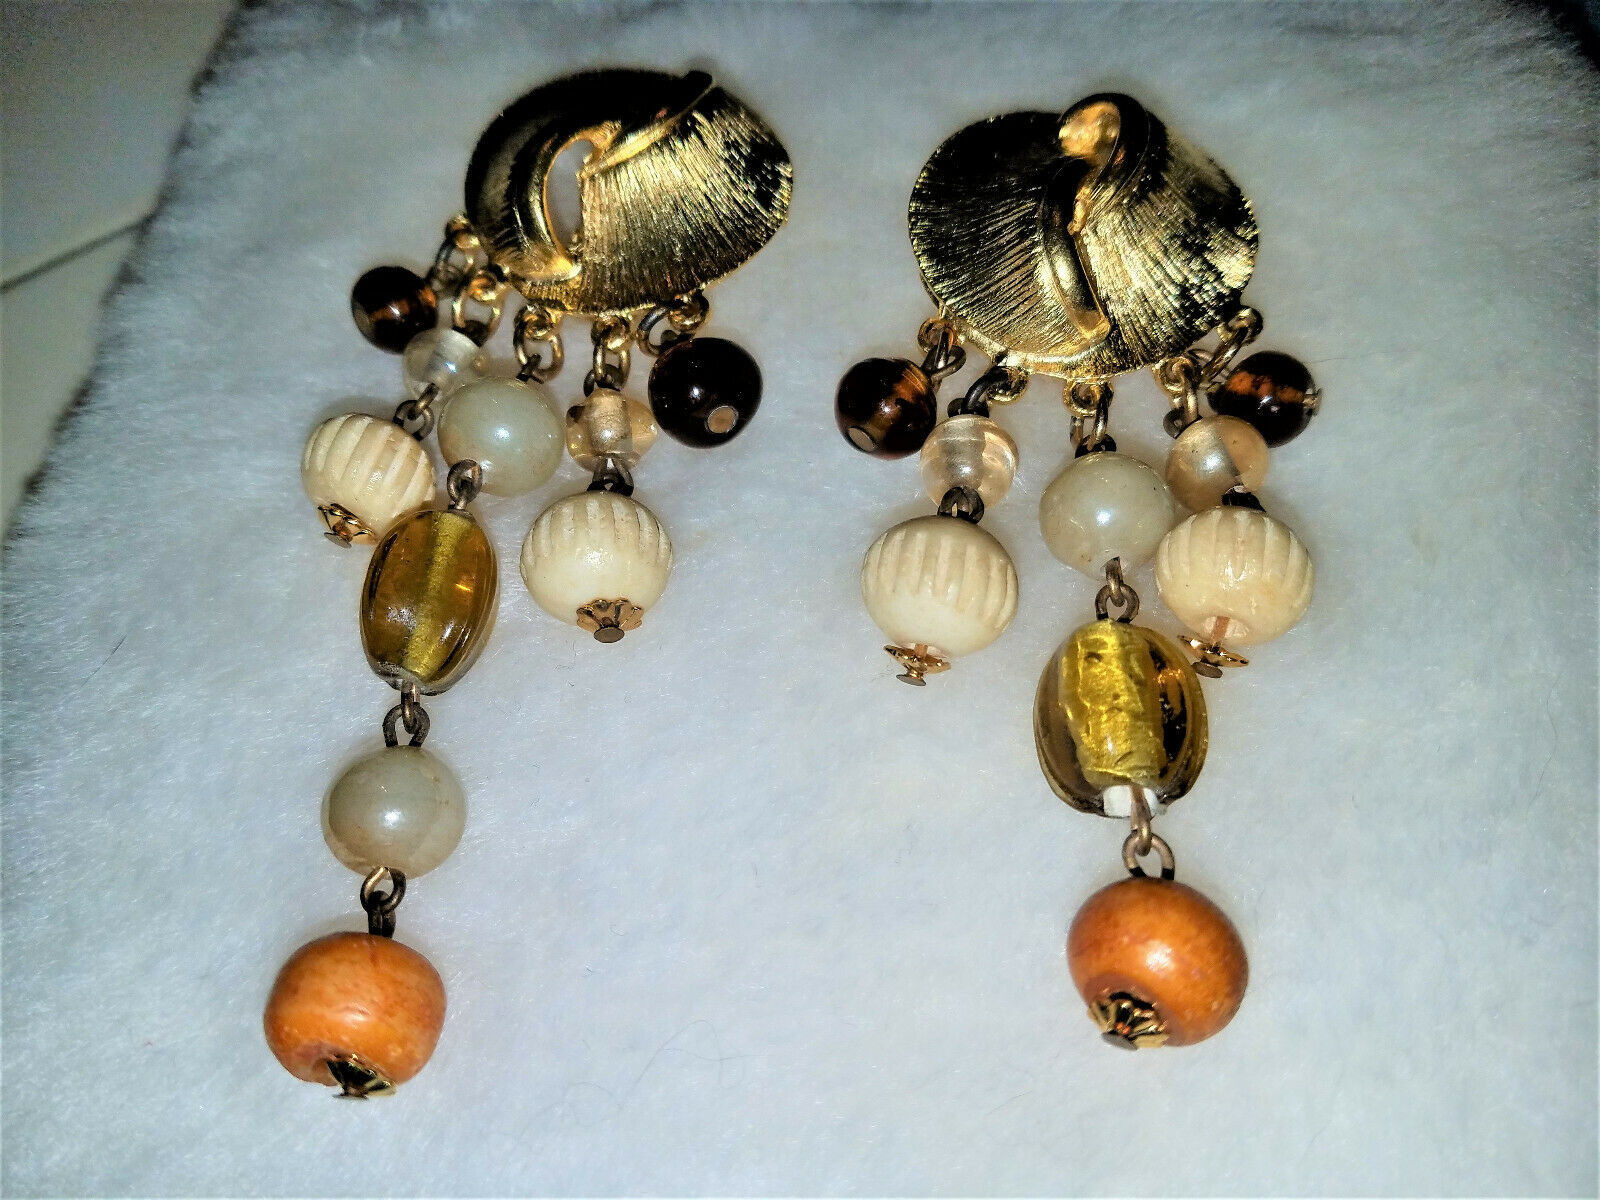 Vintage Signed CRAFT Clip on Earrings Large Etruscan Style Statement Piece Gem-Craft